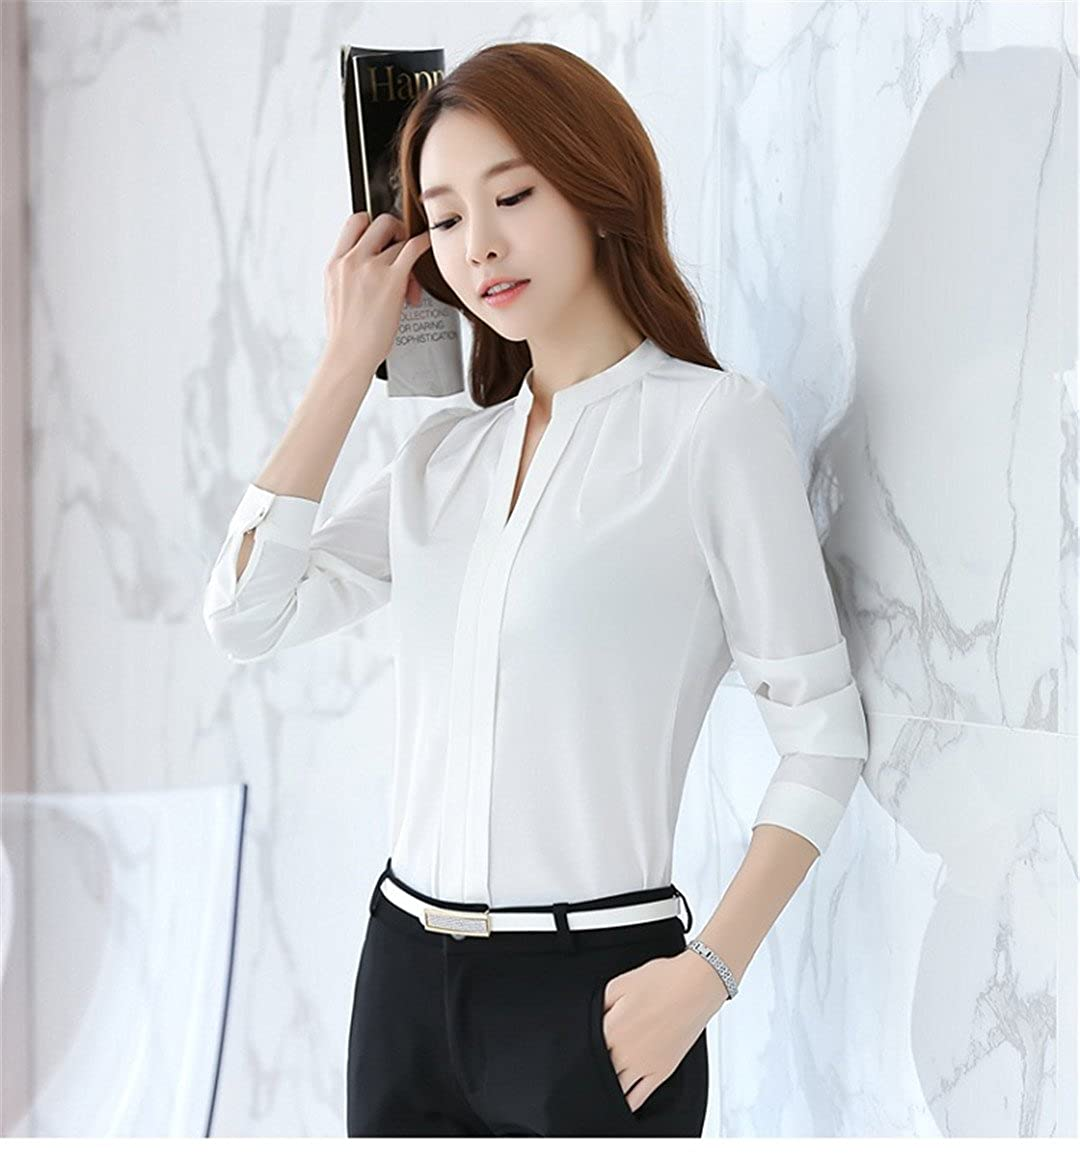 2fbb44f6cfca CHIFFON Women Blouses Long Sleeve Blouse Tops Chemise Femme Shirts White  Pink Purple at Amazon Women's Clothing store: